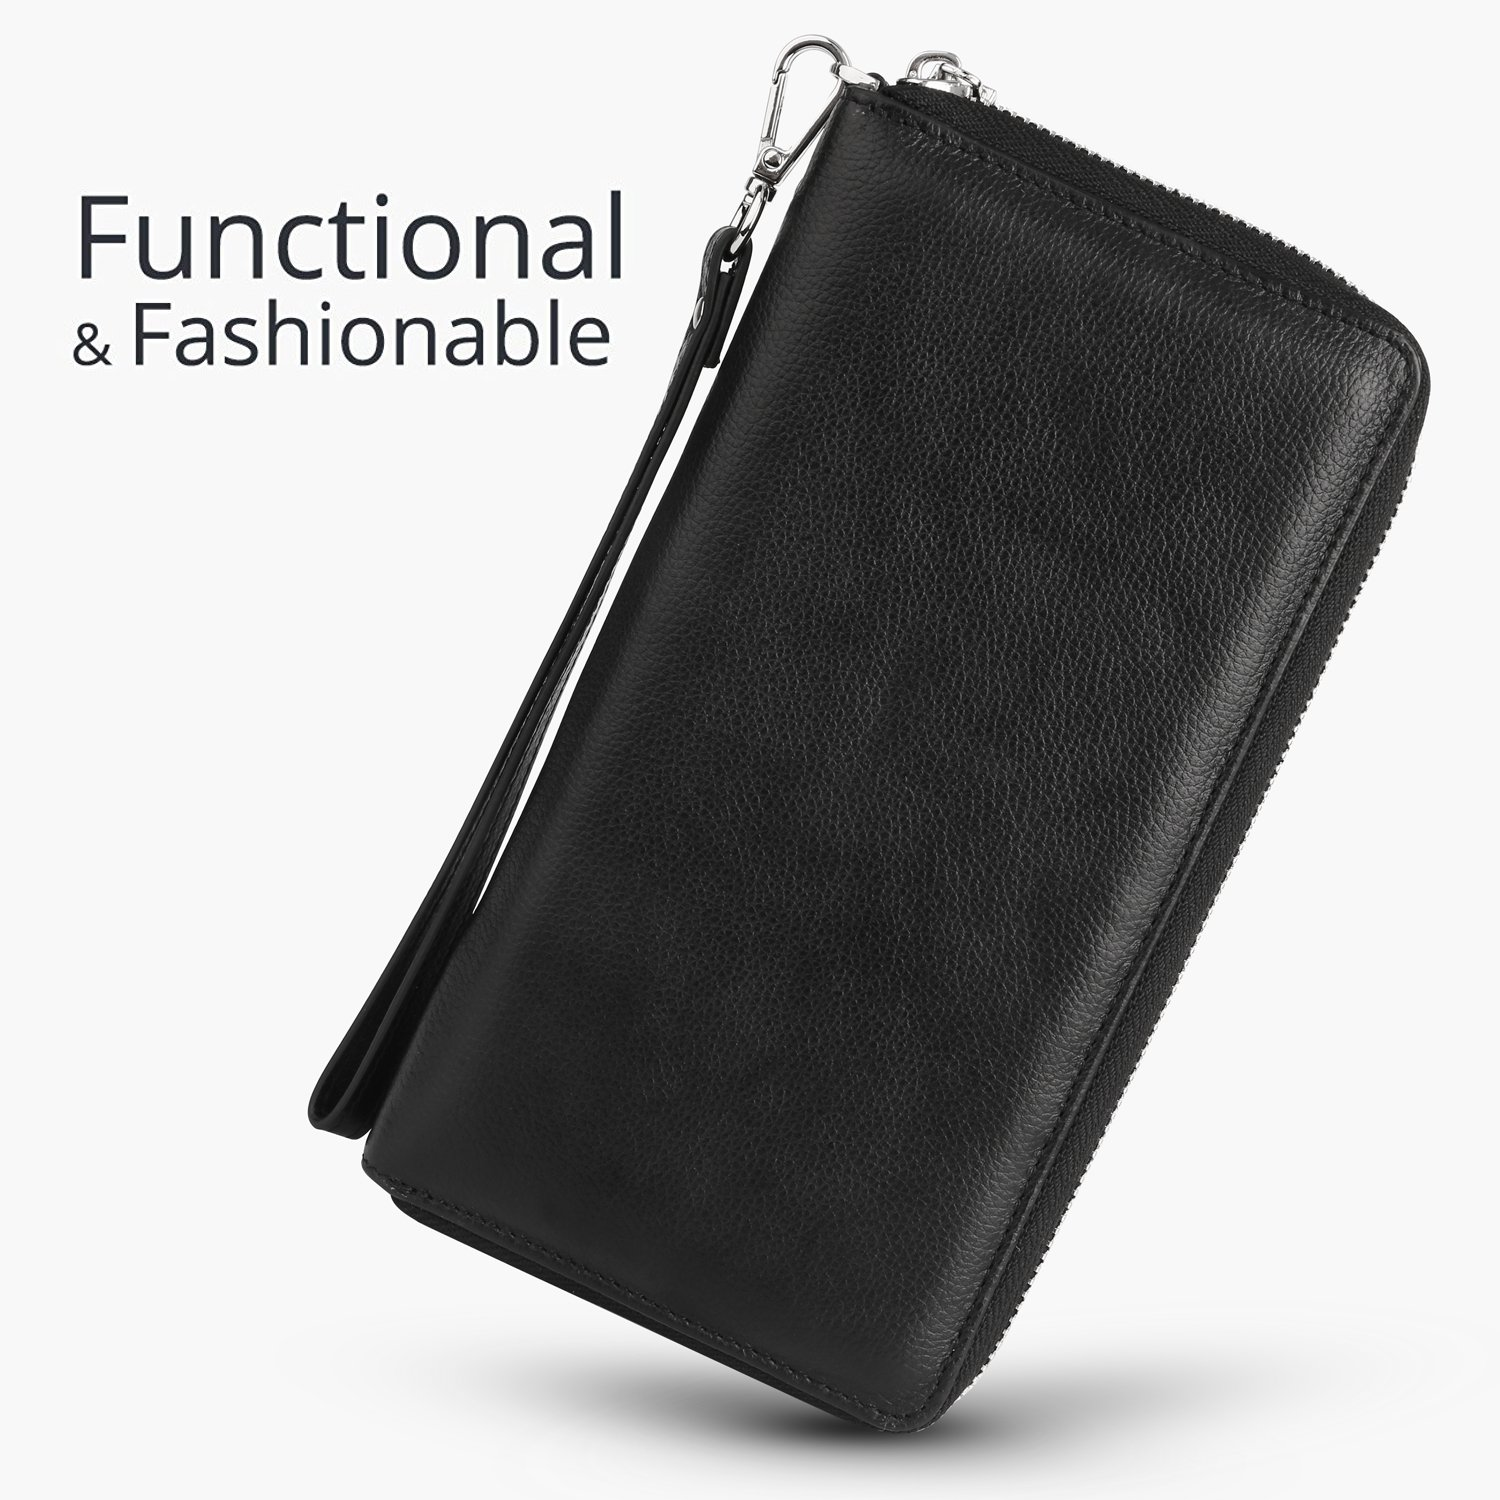 Womens RFID Blocking Wallet Real Leather Zip Around Clutch Large Travel Purse (Black) by Aymlan (Image #2)